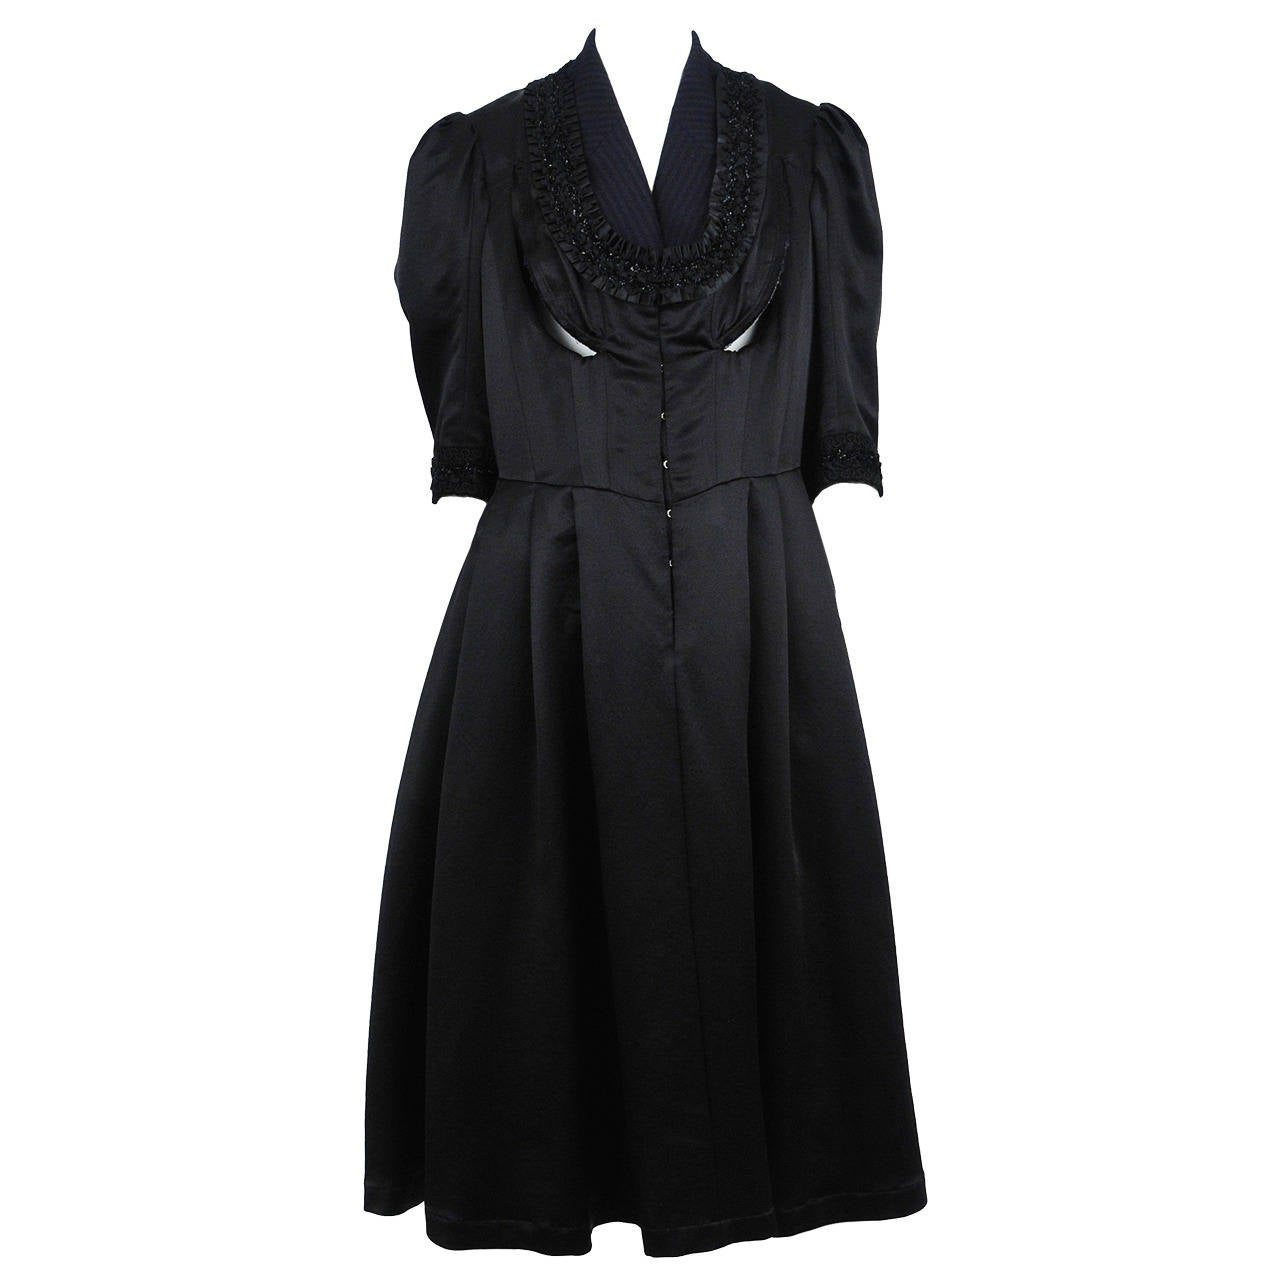 comme des garcons corseted dress at 1stdibs. Black Bedroom Furniture Sets. Home Design Ideas